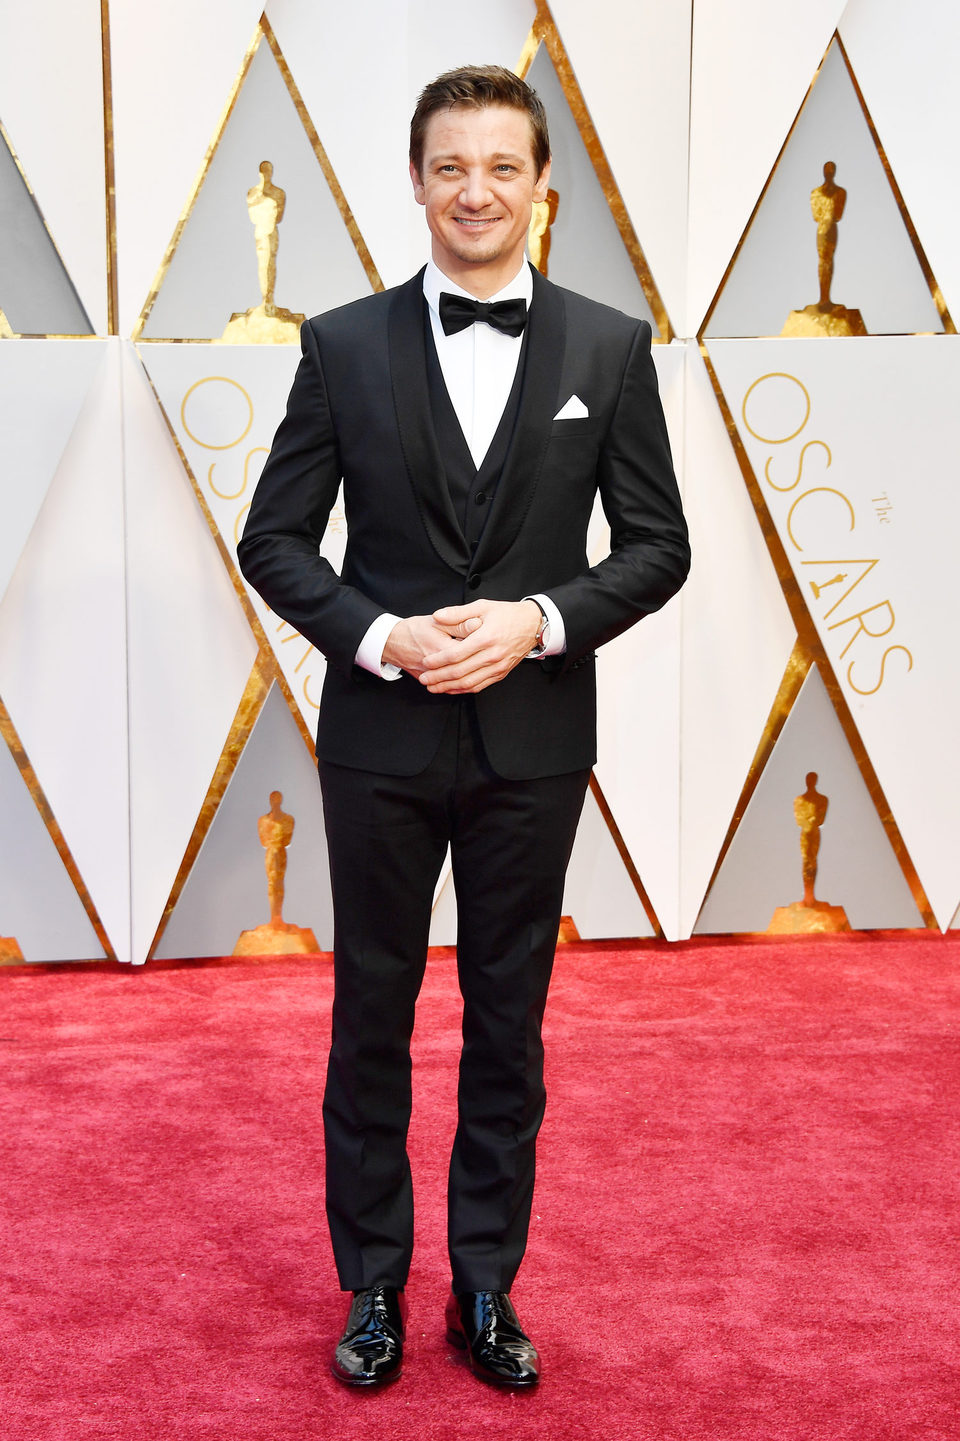 Jeremy Renner at the Oscars 2017 red carpet